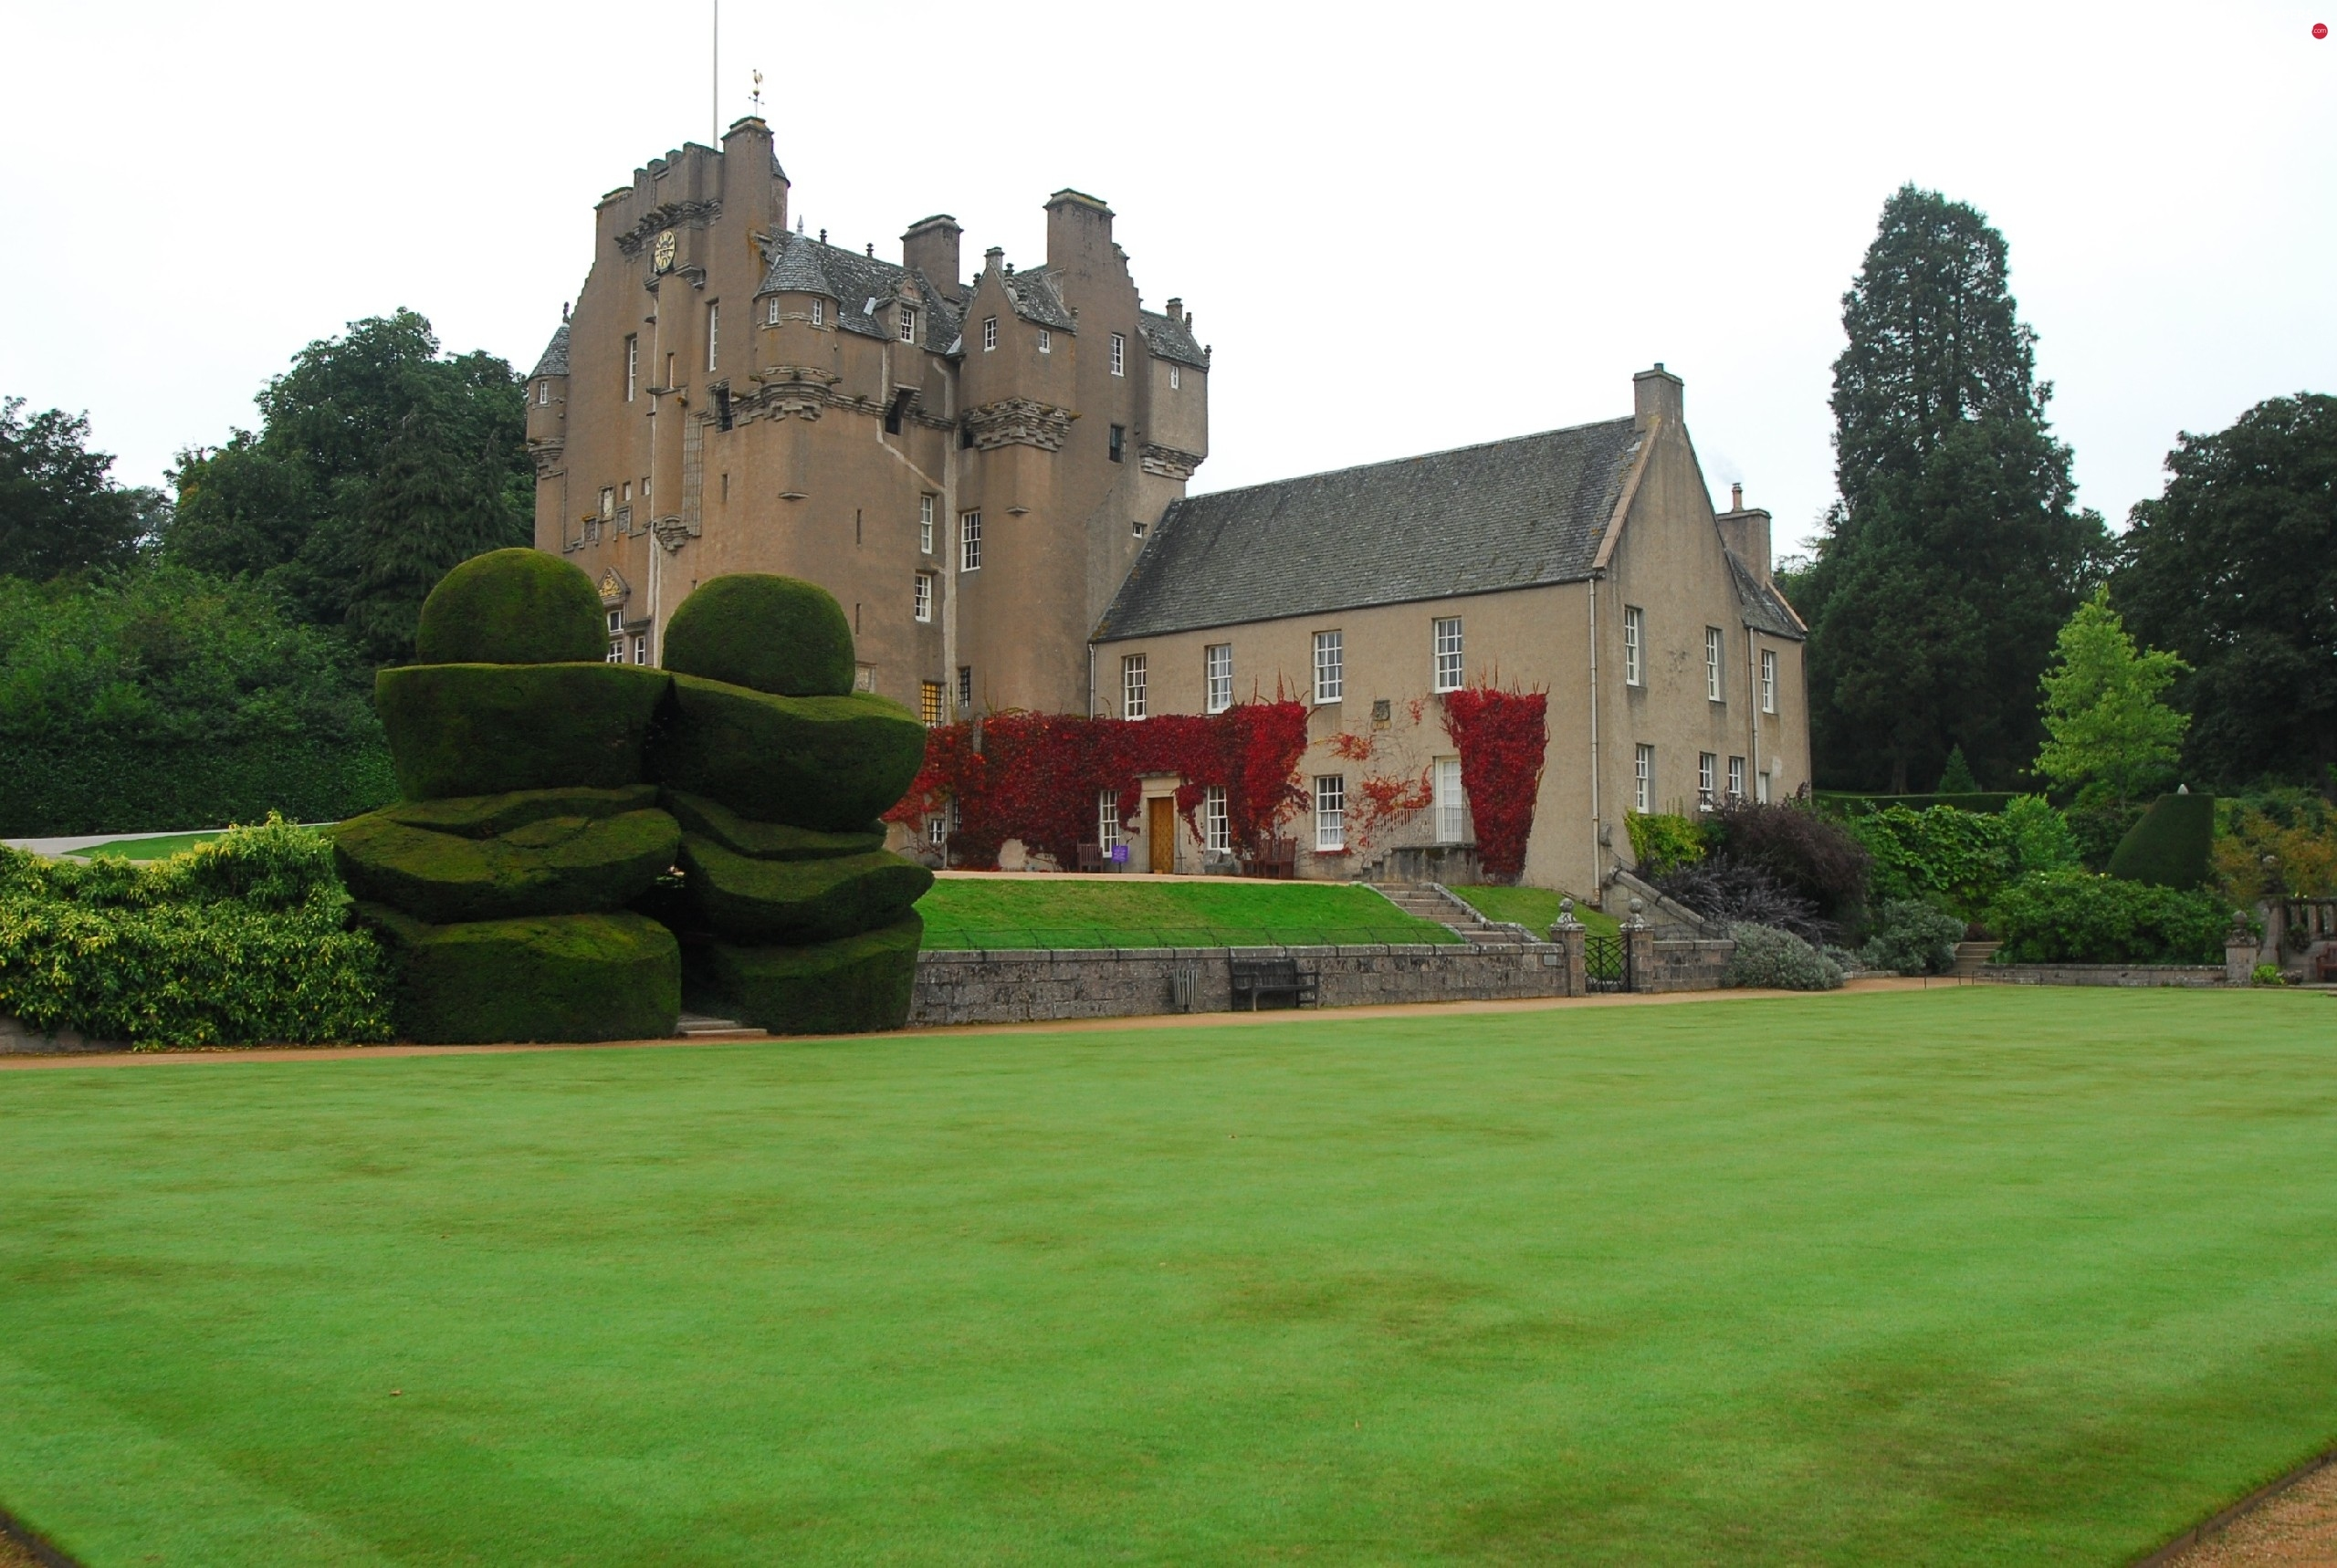 Lawn, Scotland, Castle, Crathes